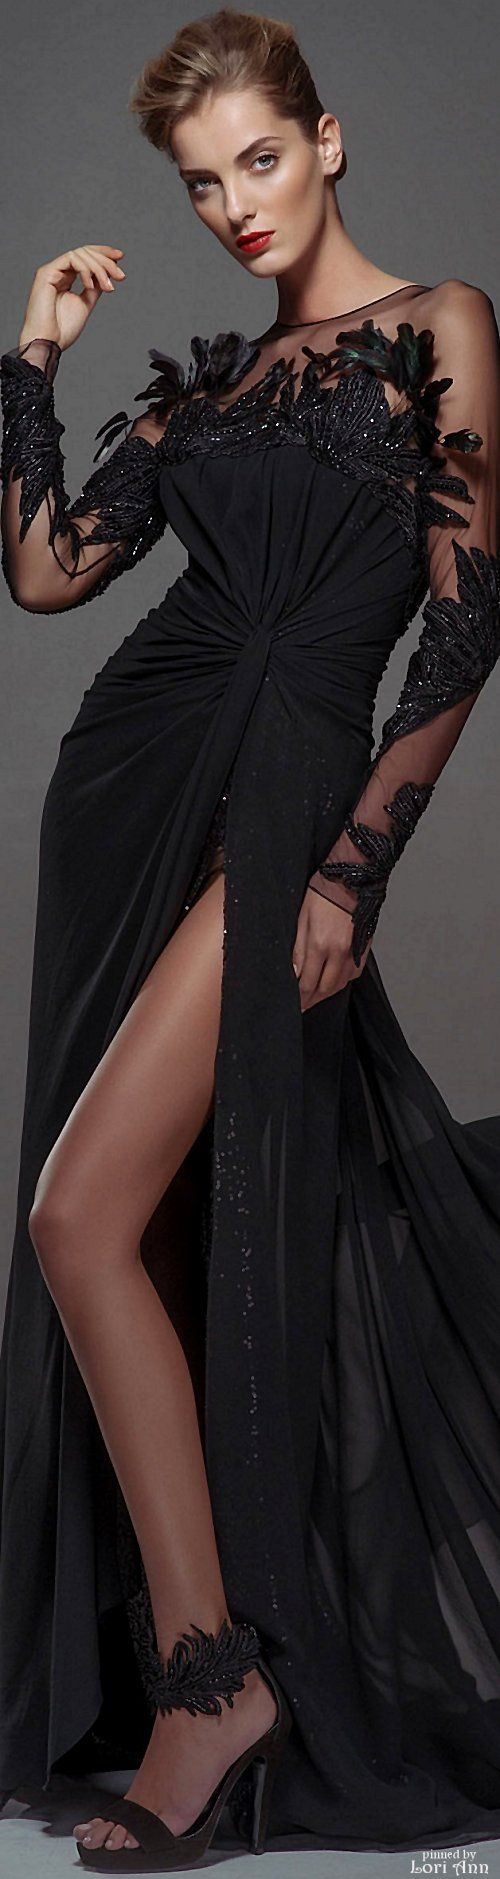 Blanka Matragi Couture Fall 2015 | https://www.pinterest.com/sclarkjordan/black-essence/